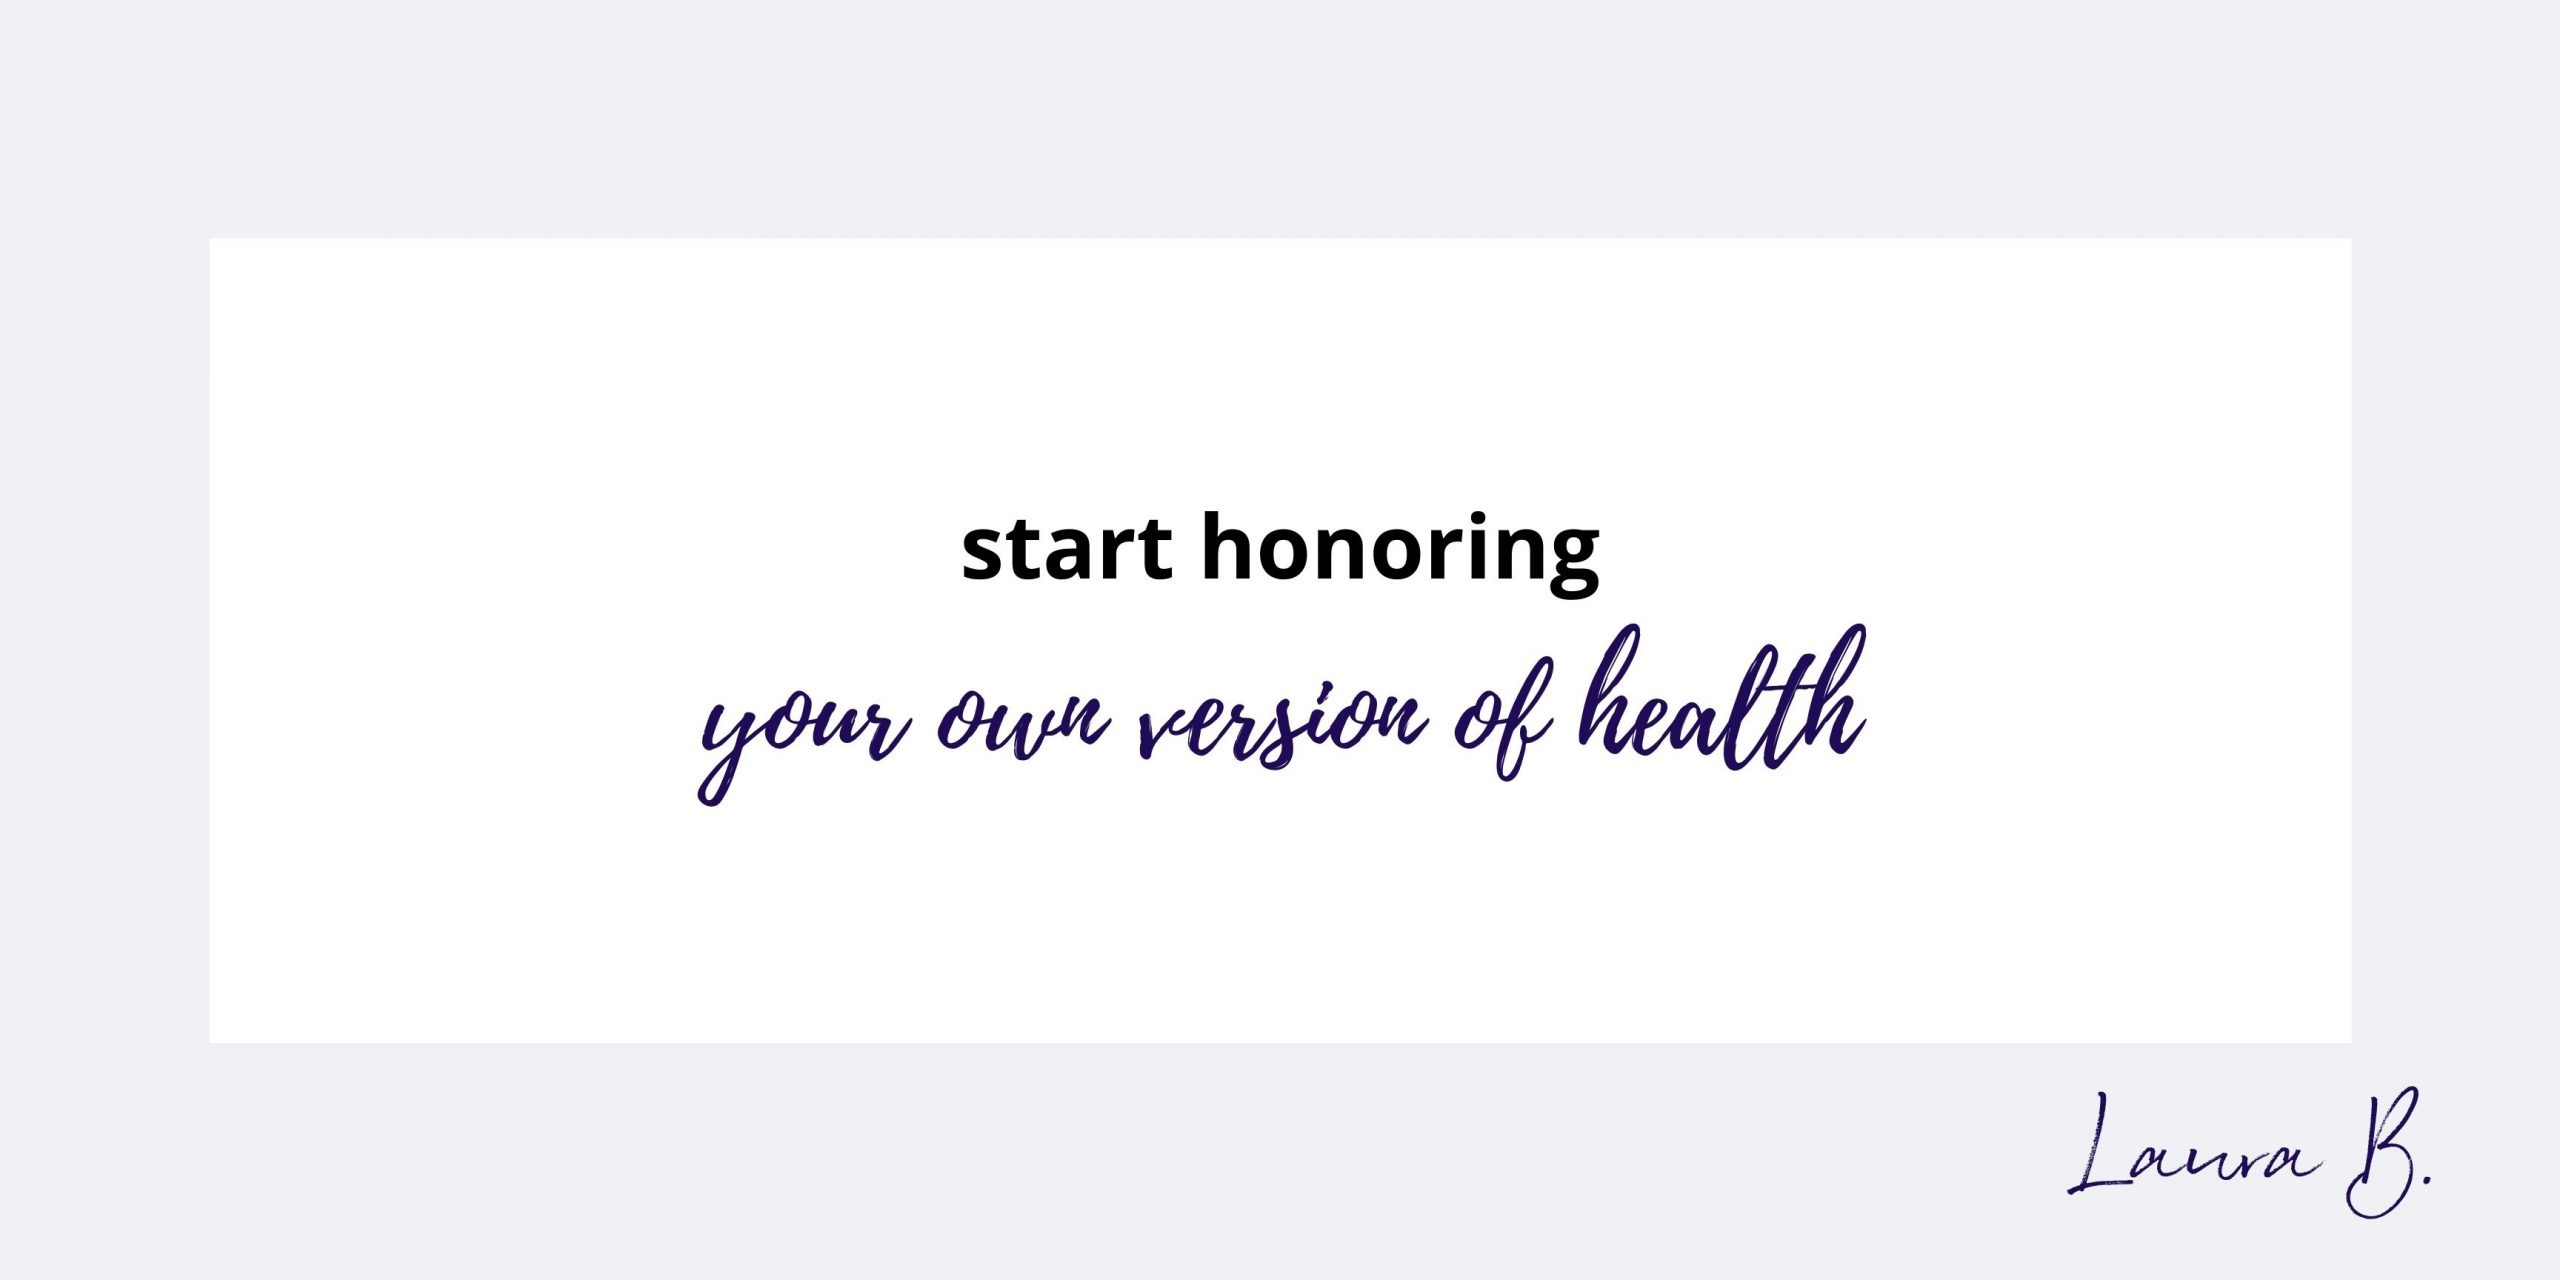 start honoring your own version of health